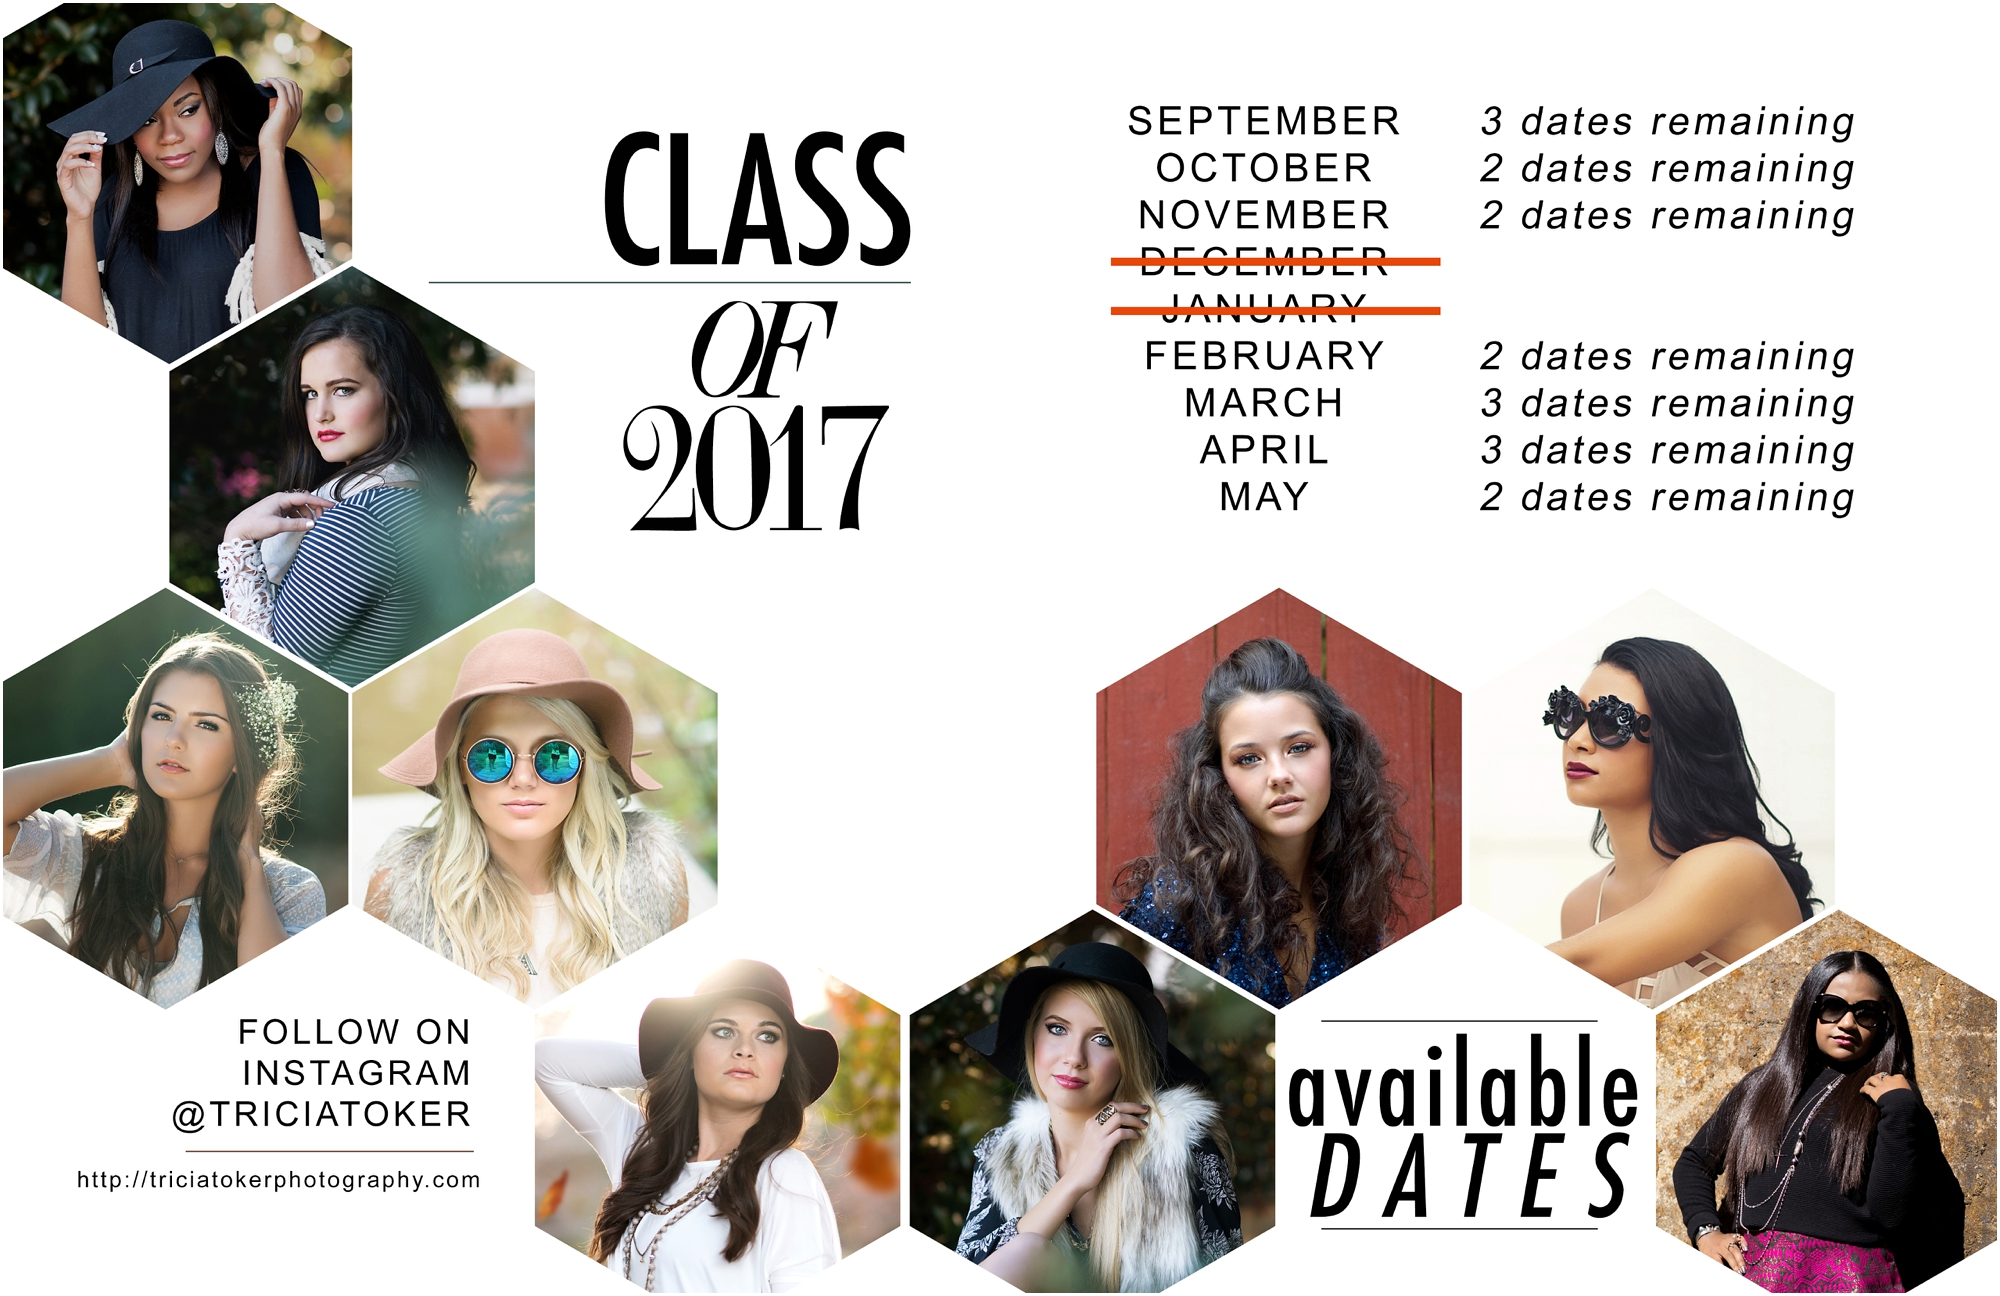 atlanta buckhead senior pictures photographer headshots portraits prom 0001 Dates Announced for Class of 2017 ~ Atlanta Ga Senior Pictures Photographer